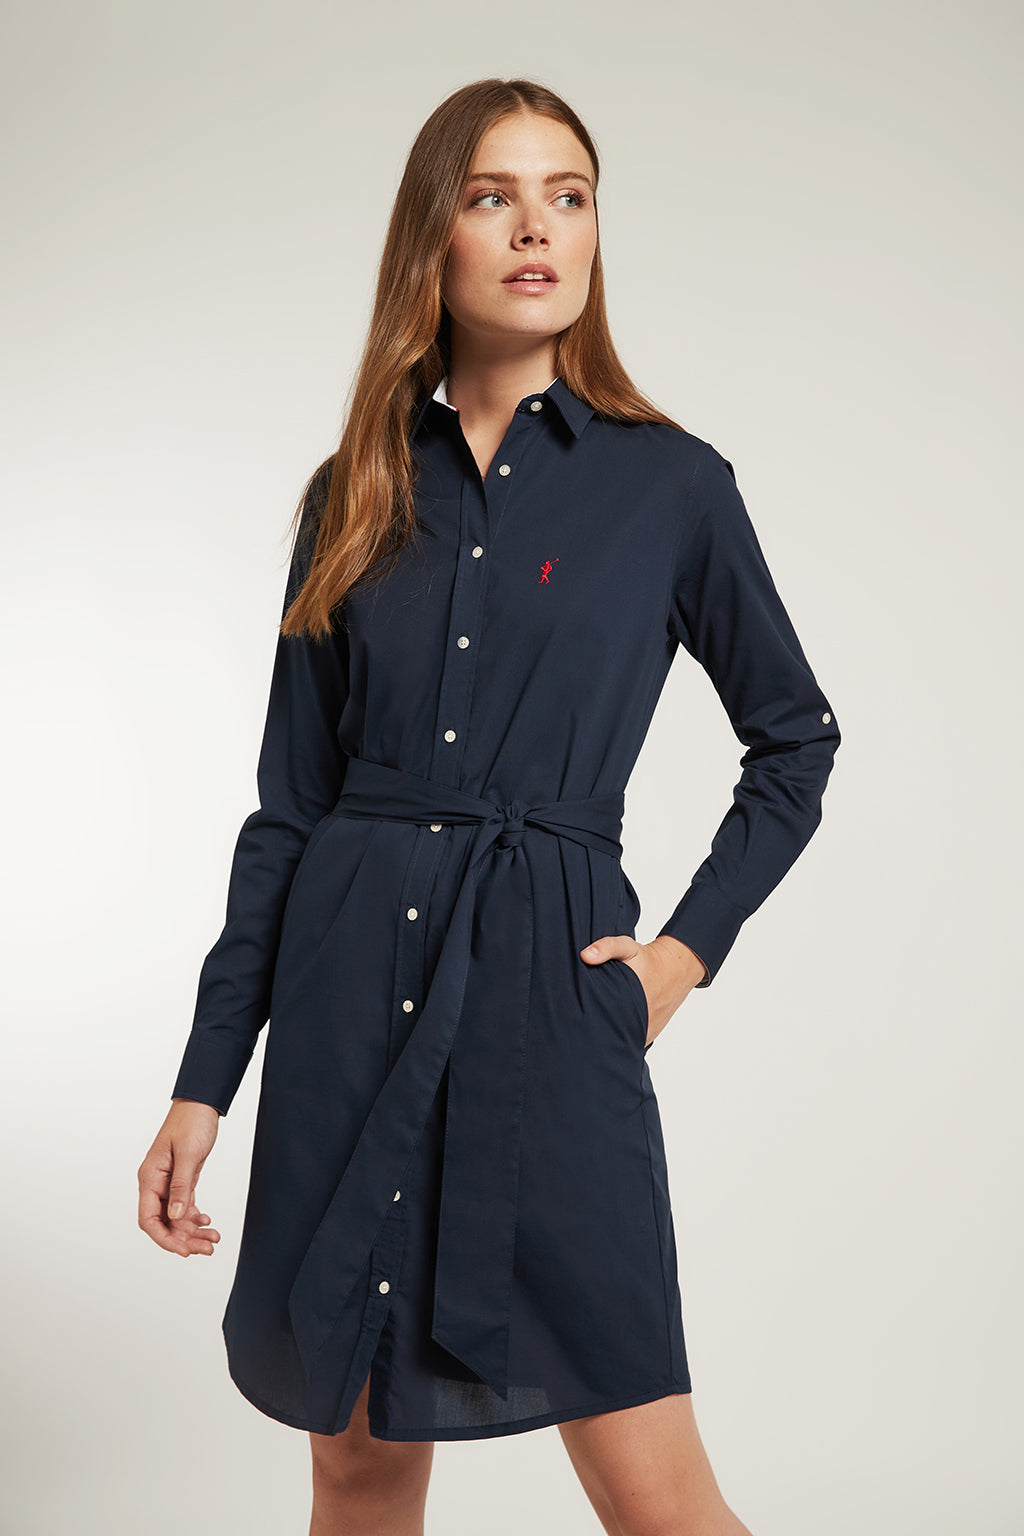 Navy blue shirtdress in elastic cotton